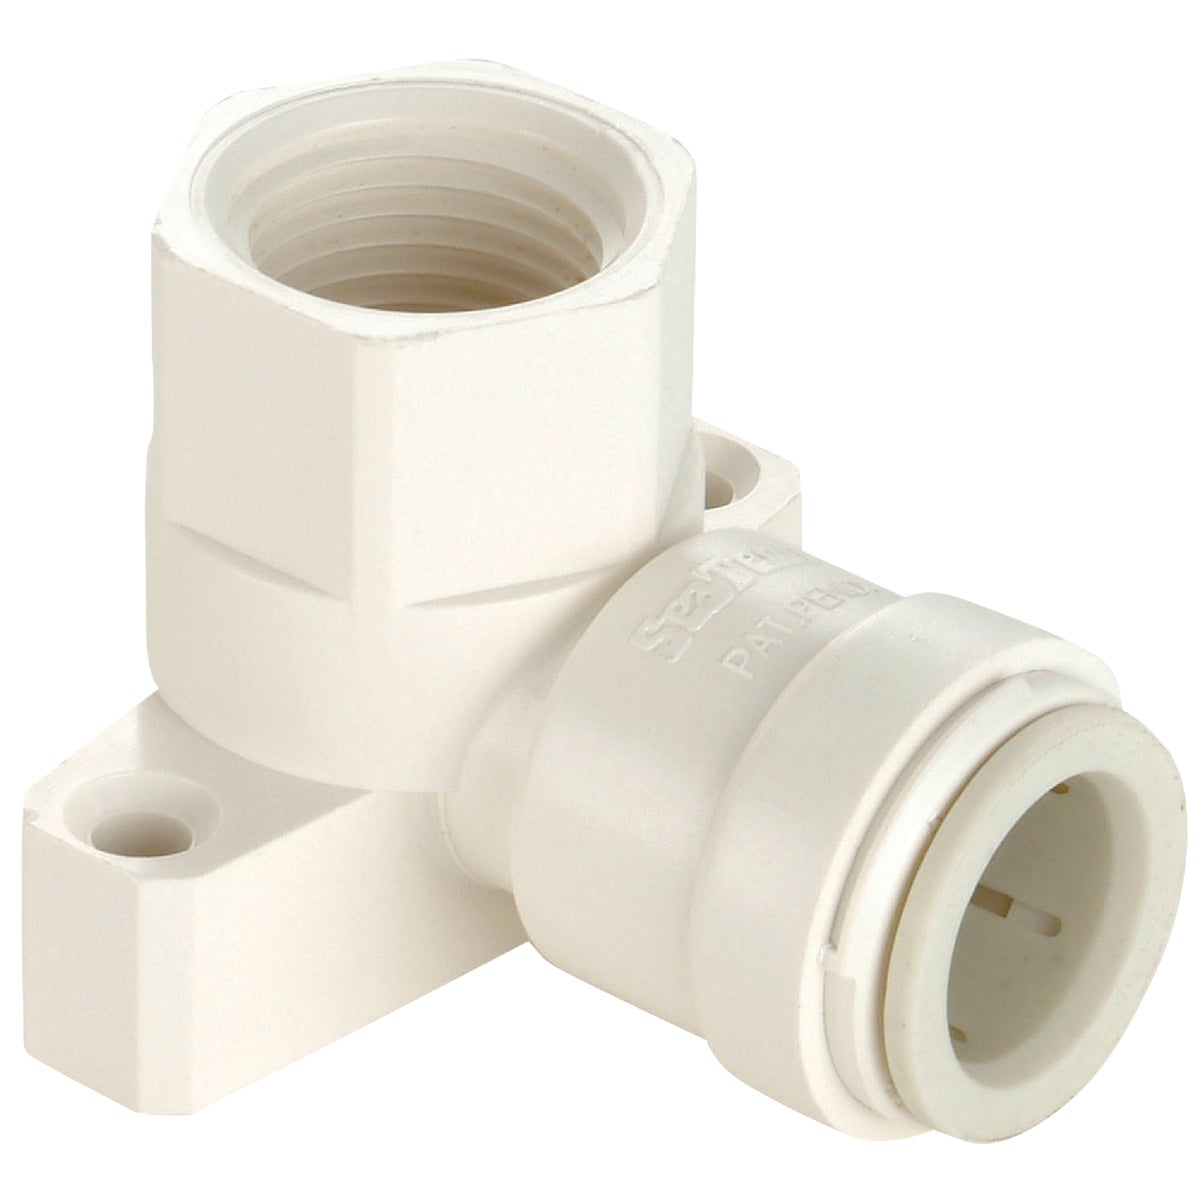 1/2CTSX1/2FPT DROP ELBOW - P-638 by Watts Pex